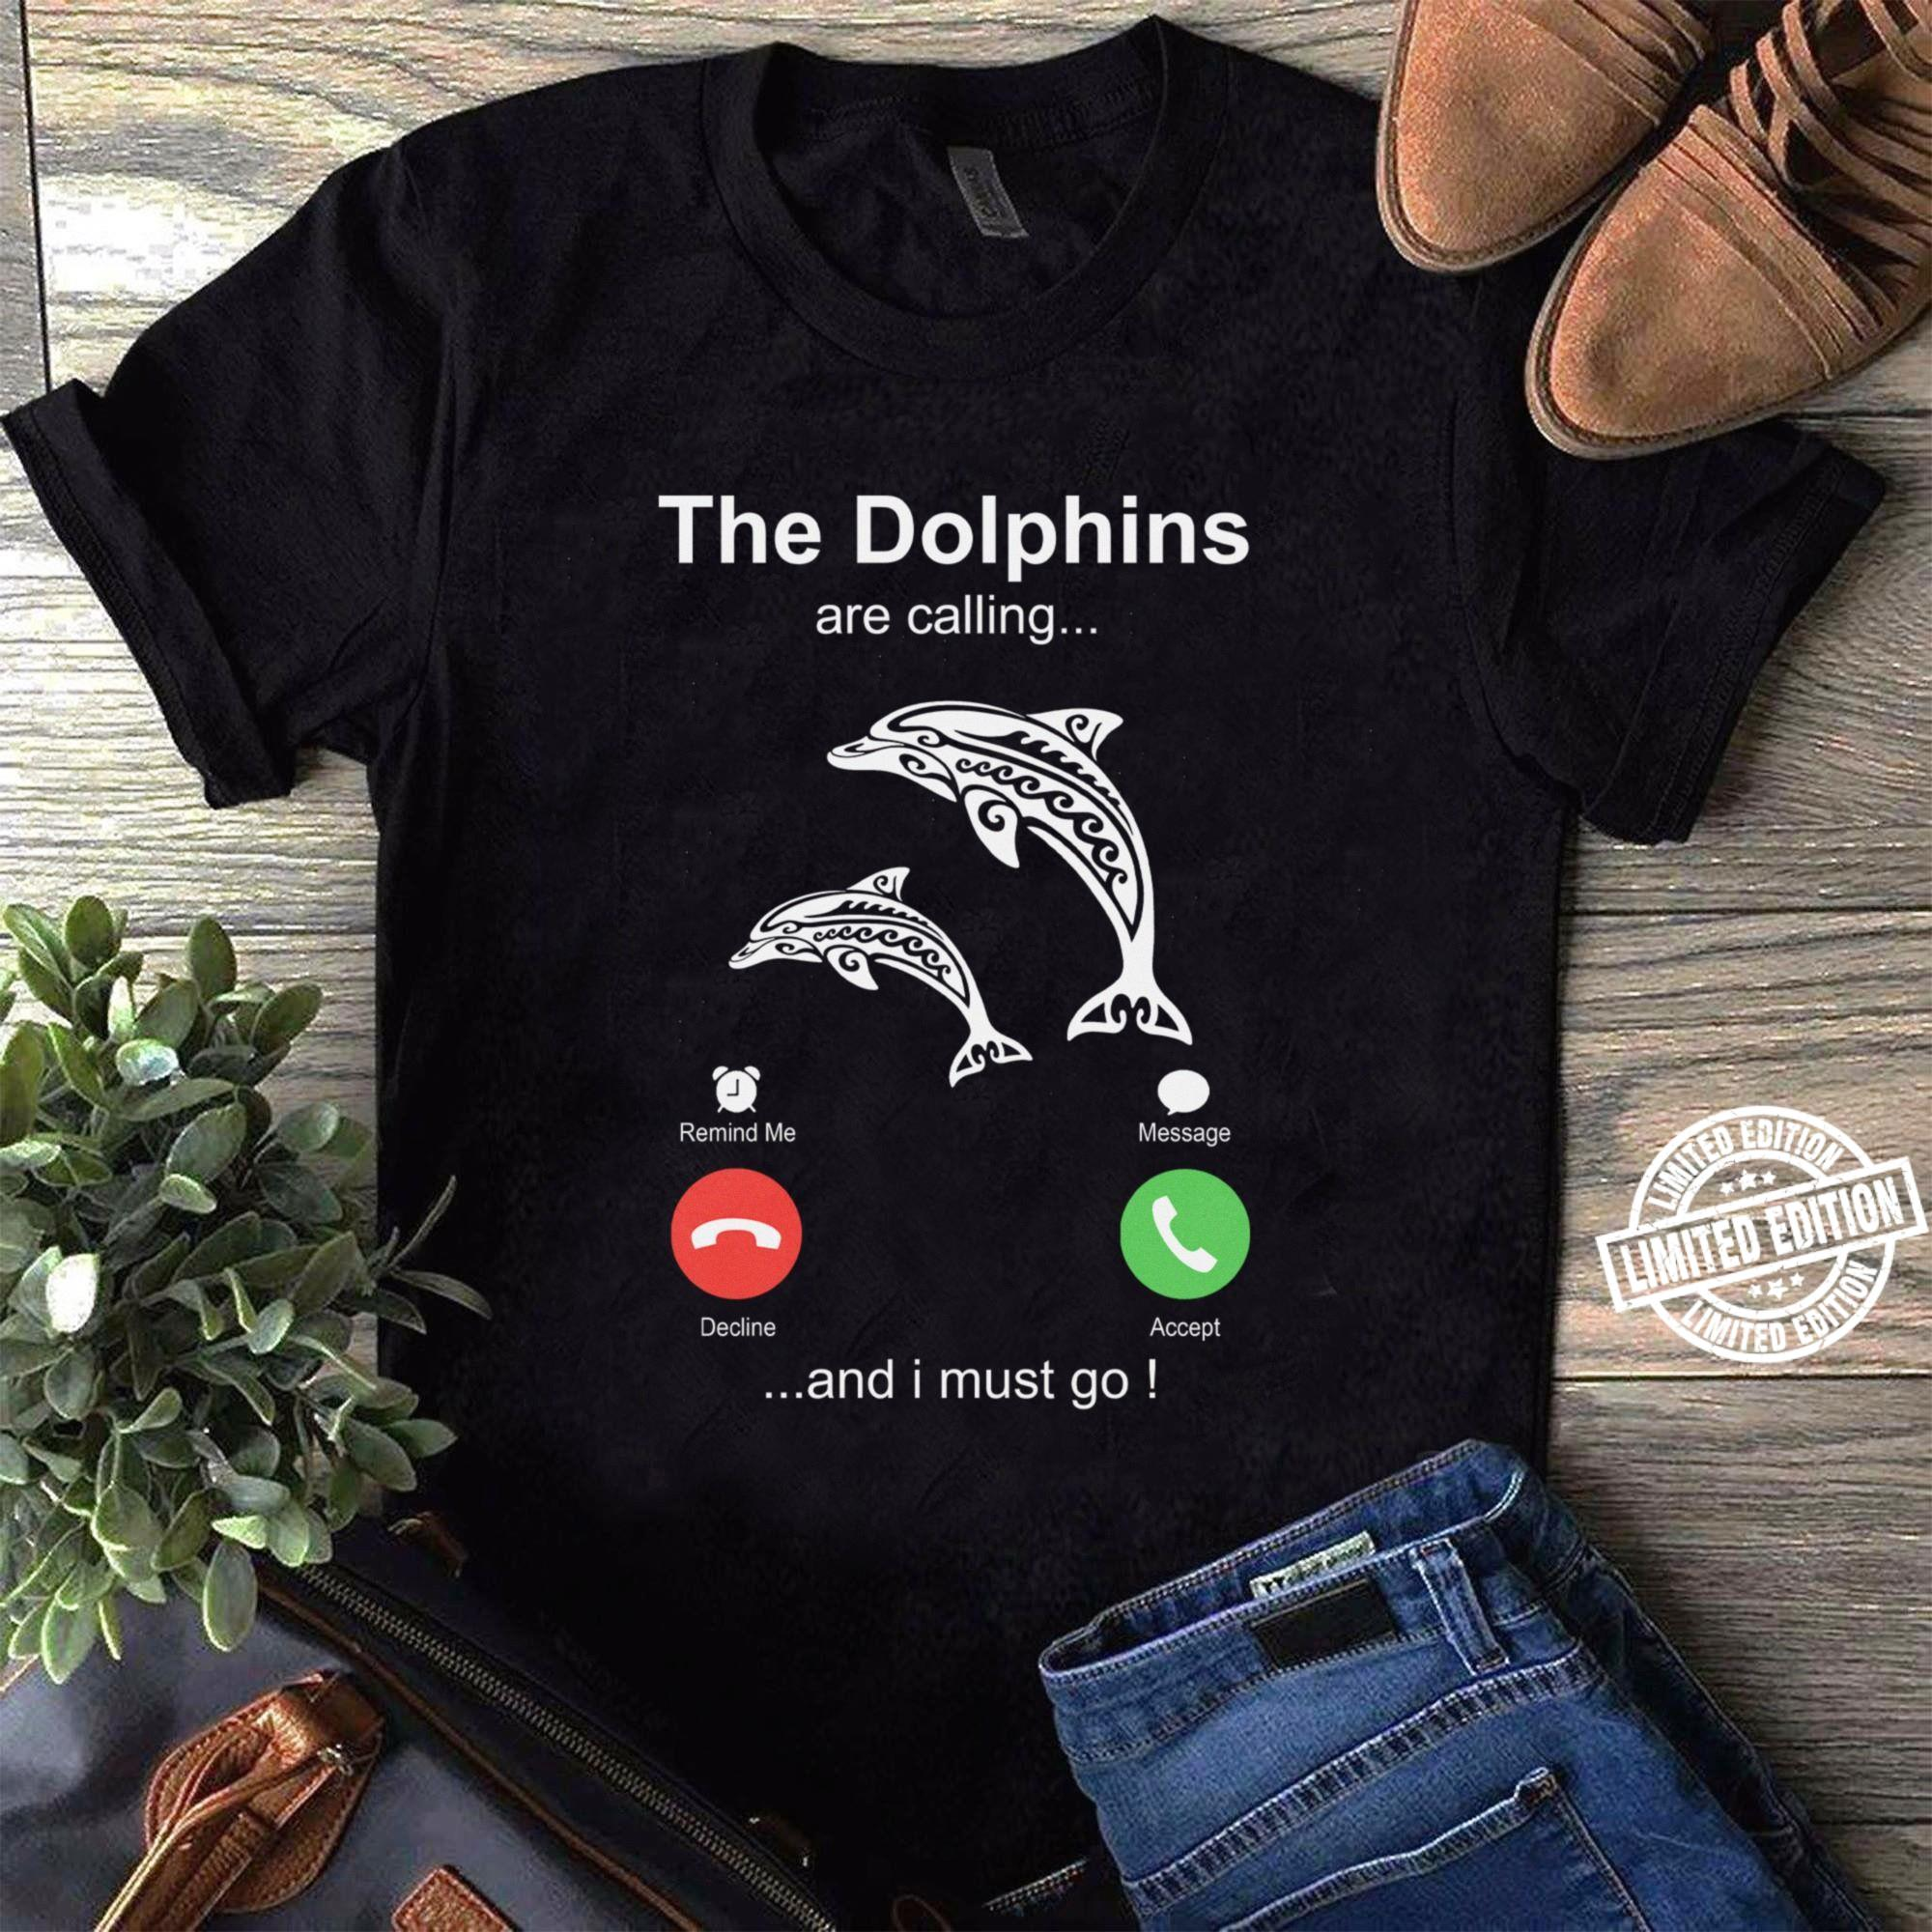 The dolphins are calling and i must go shirt